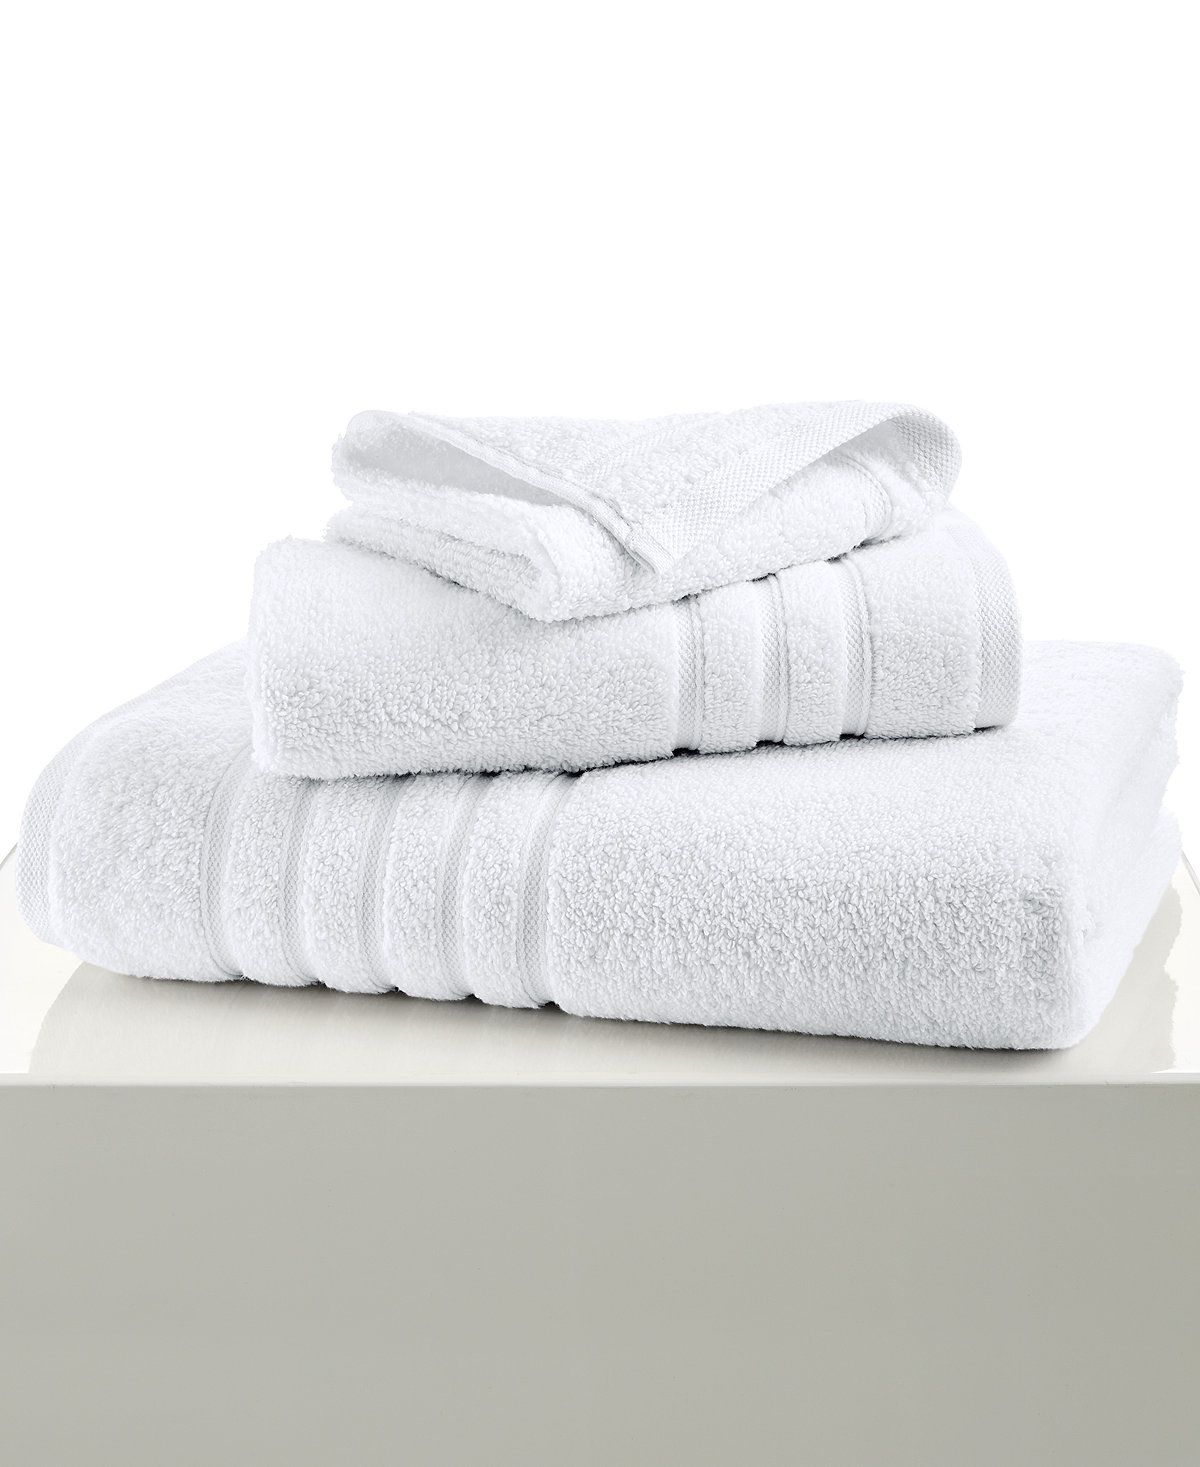 Hotel Collection Ultimate Microcotton 30 X 56 Bath Towel